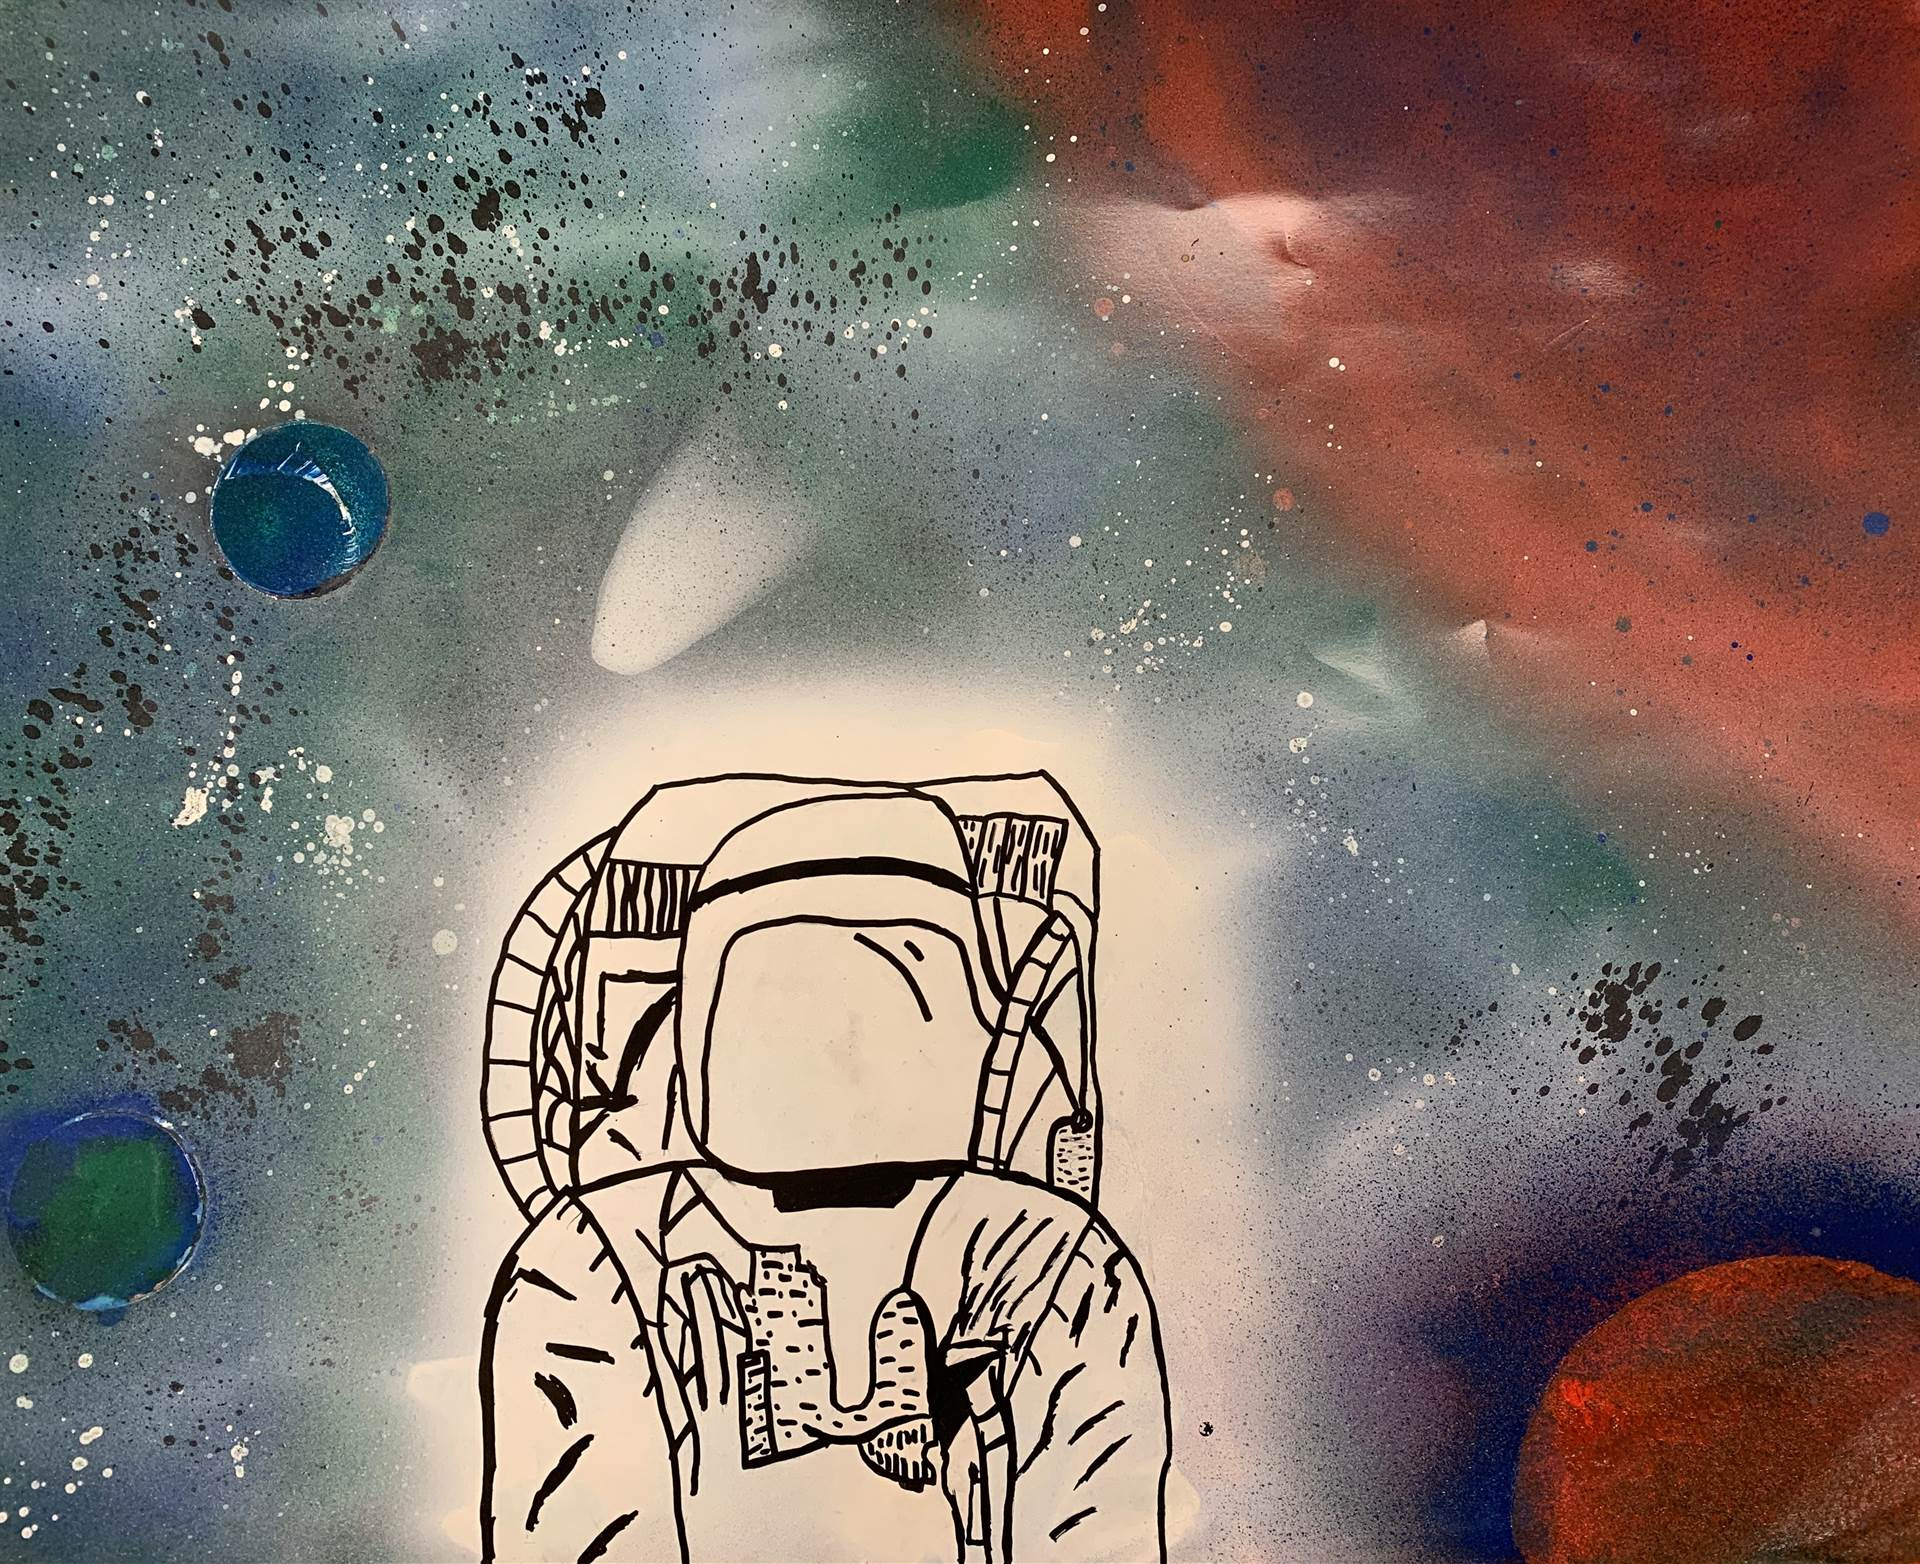 Painting of Spaceman